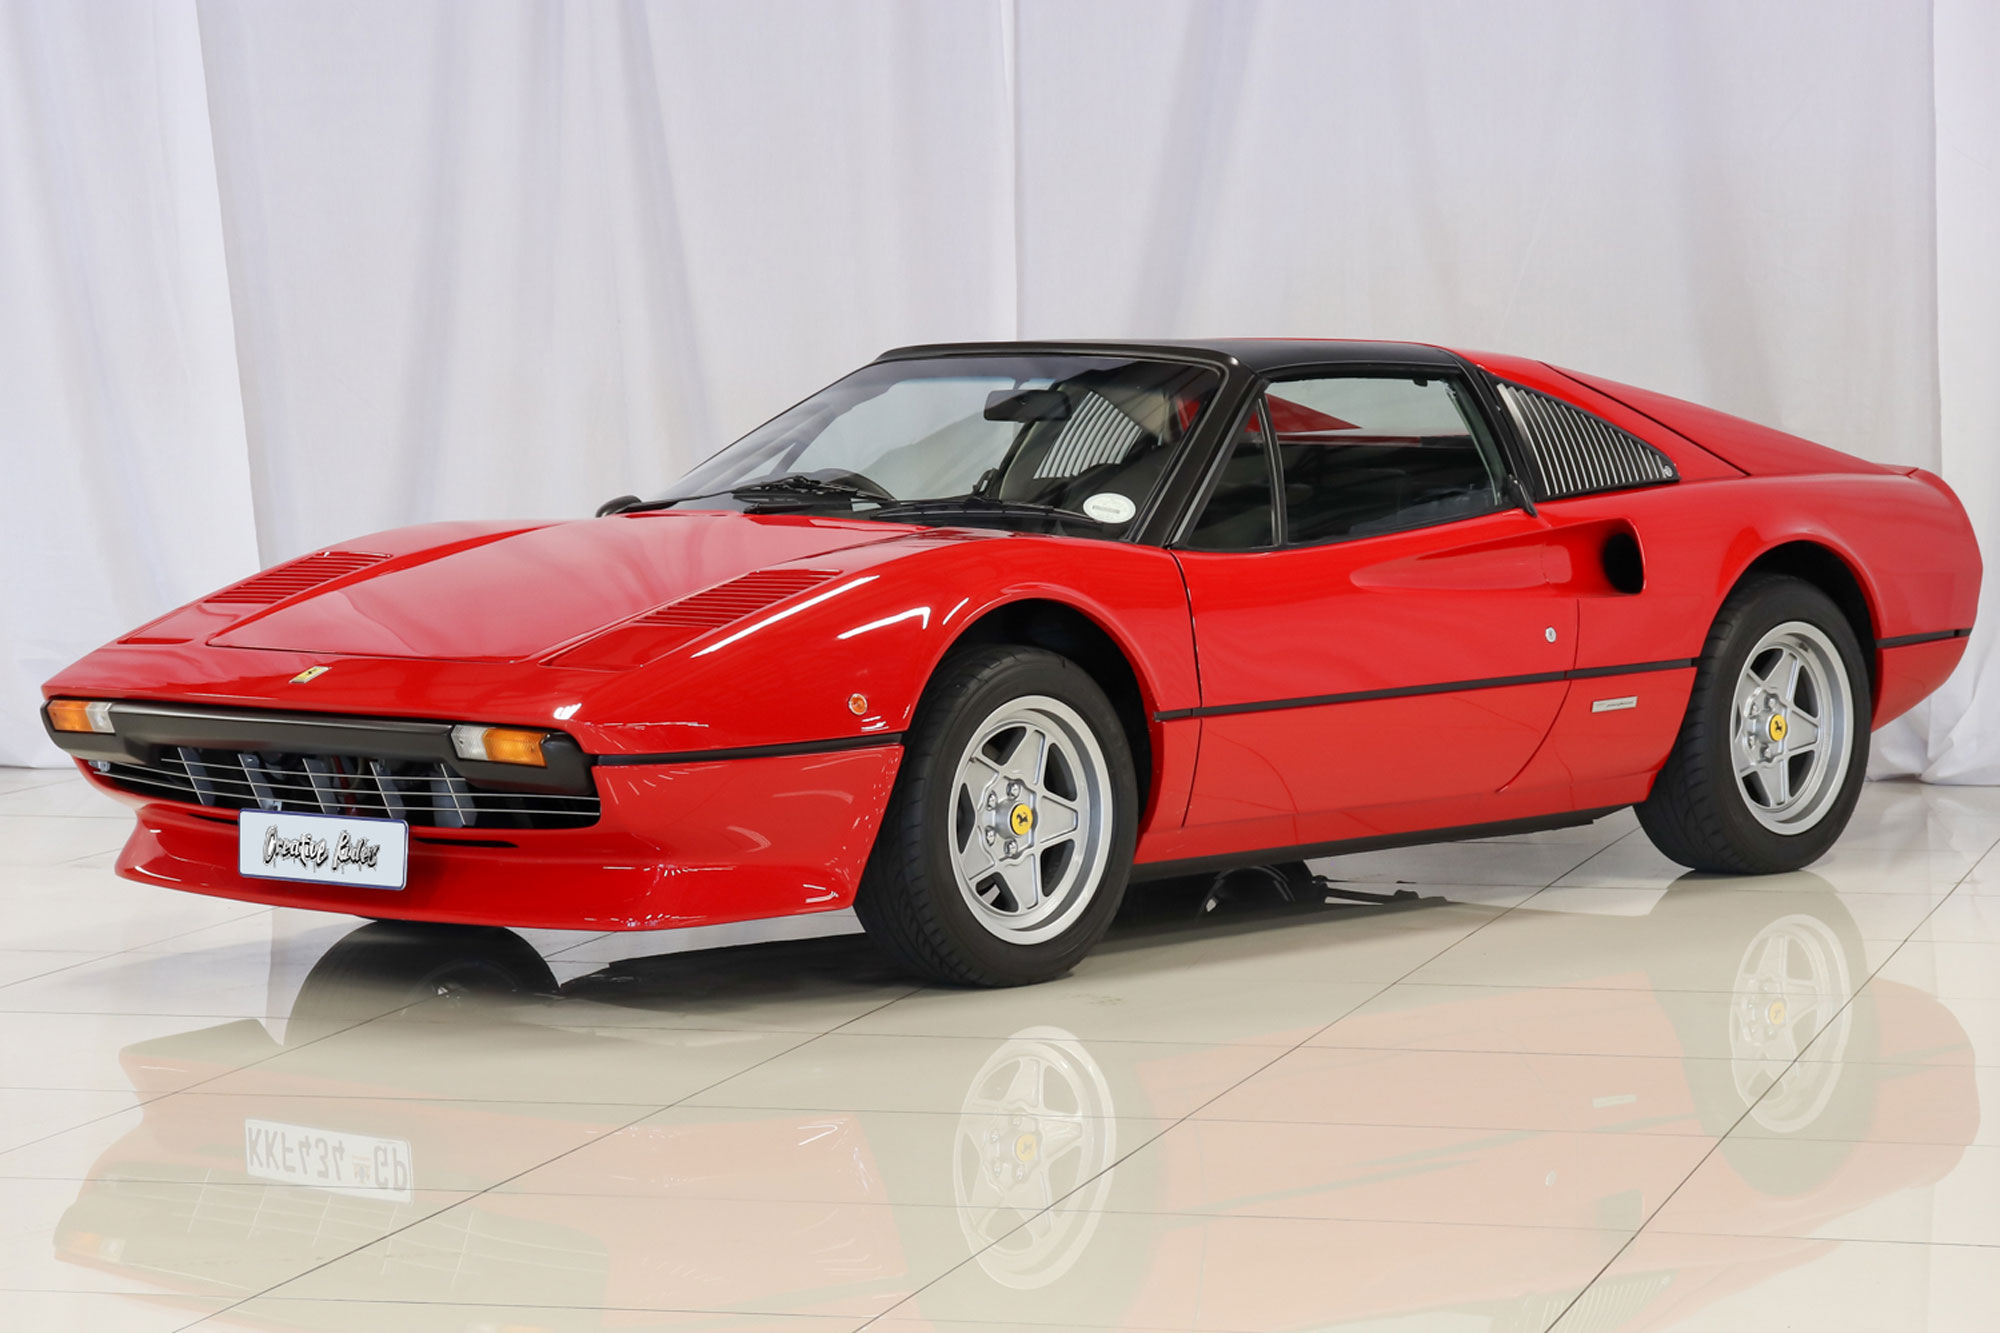 Niche Wheels Mustang >> 1979 Ferrari 308 GTS - View by Appointment - Creative Rides